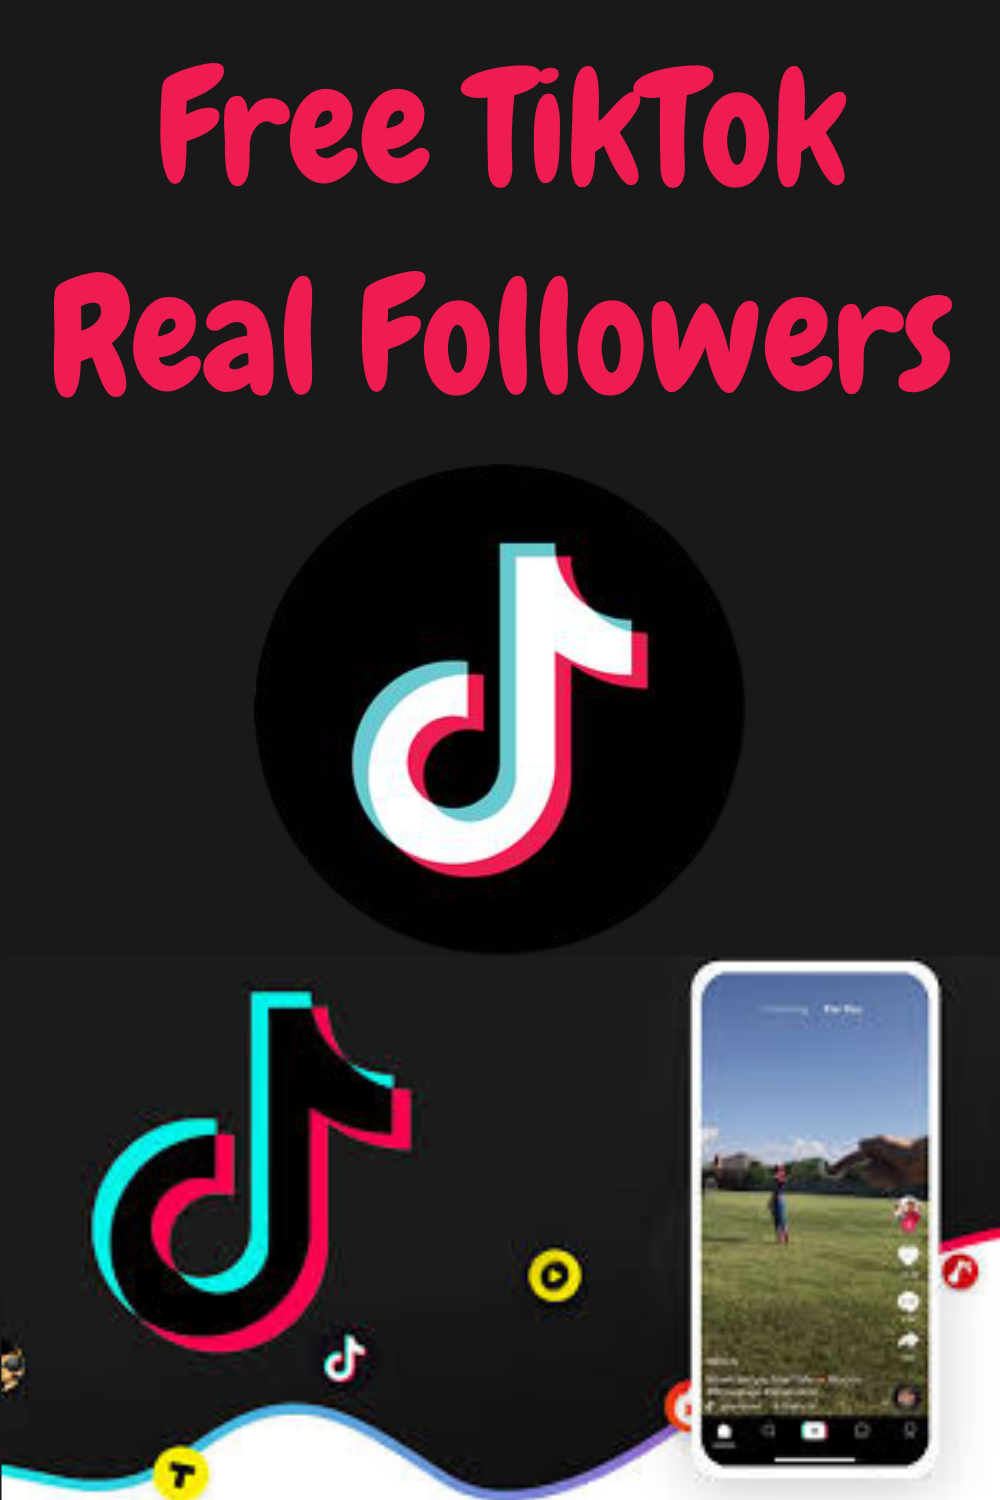 How To Increase Tiktok Real Followers And Likes In 2021 Instagram Likes And Followers Real Followers How To Memorize Things